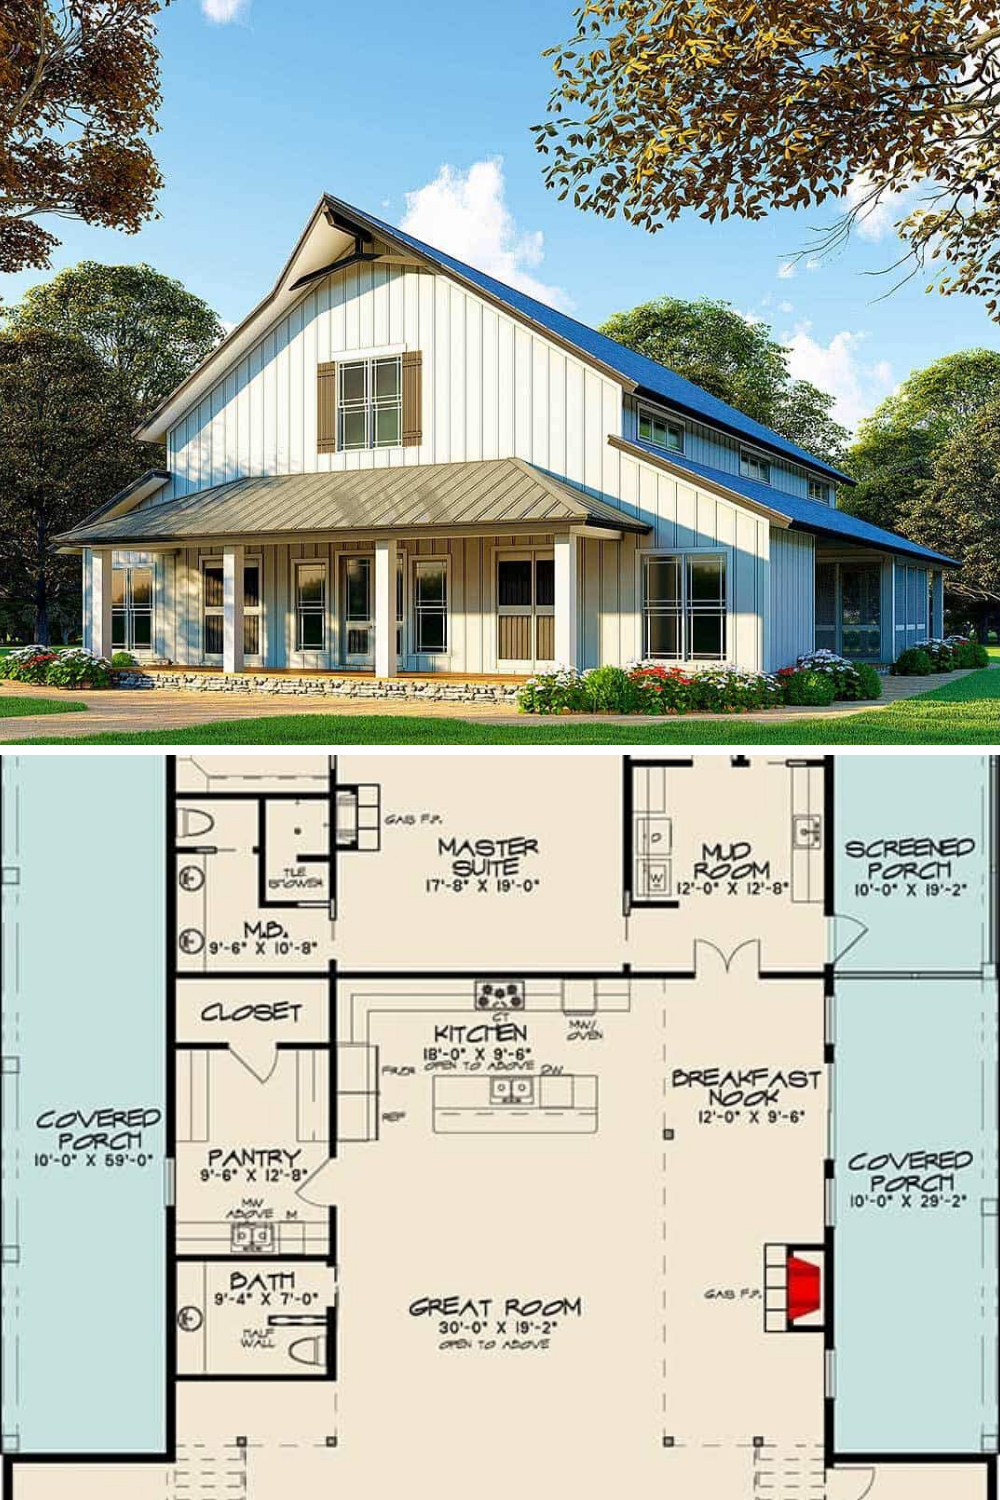 Two-Story 3-Bedroom Barndominium Inspired Country Home (Floor Plan)